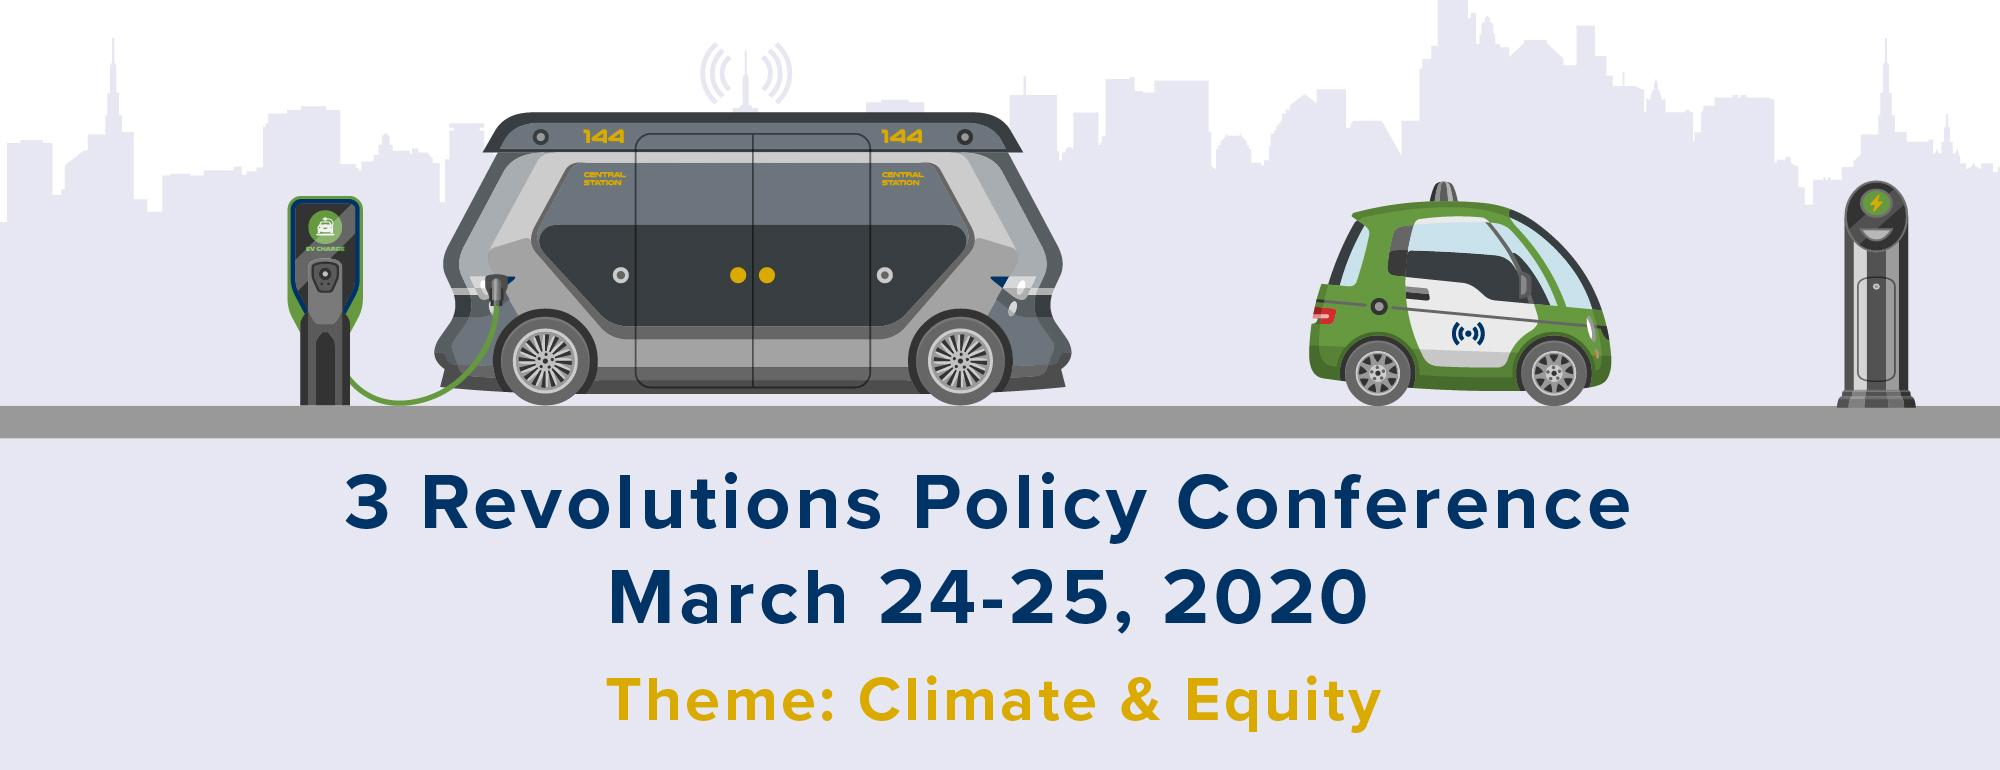 3R Policy Conference 2020